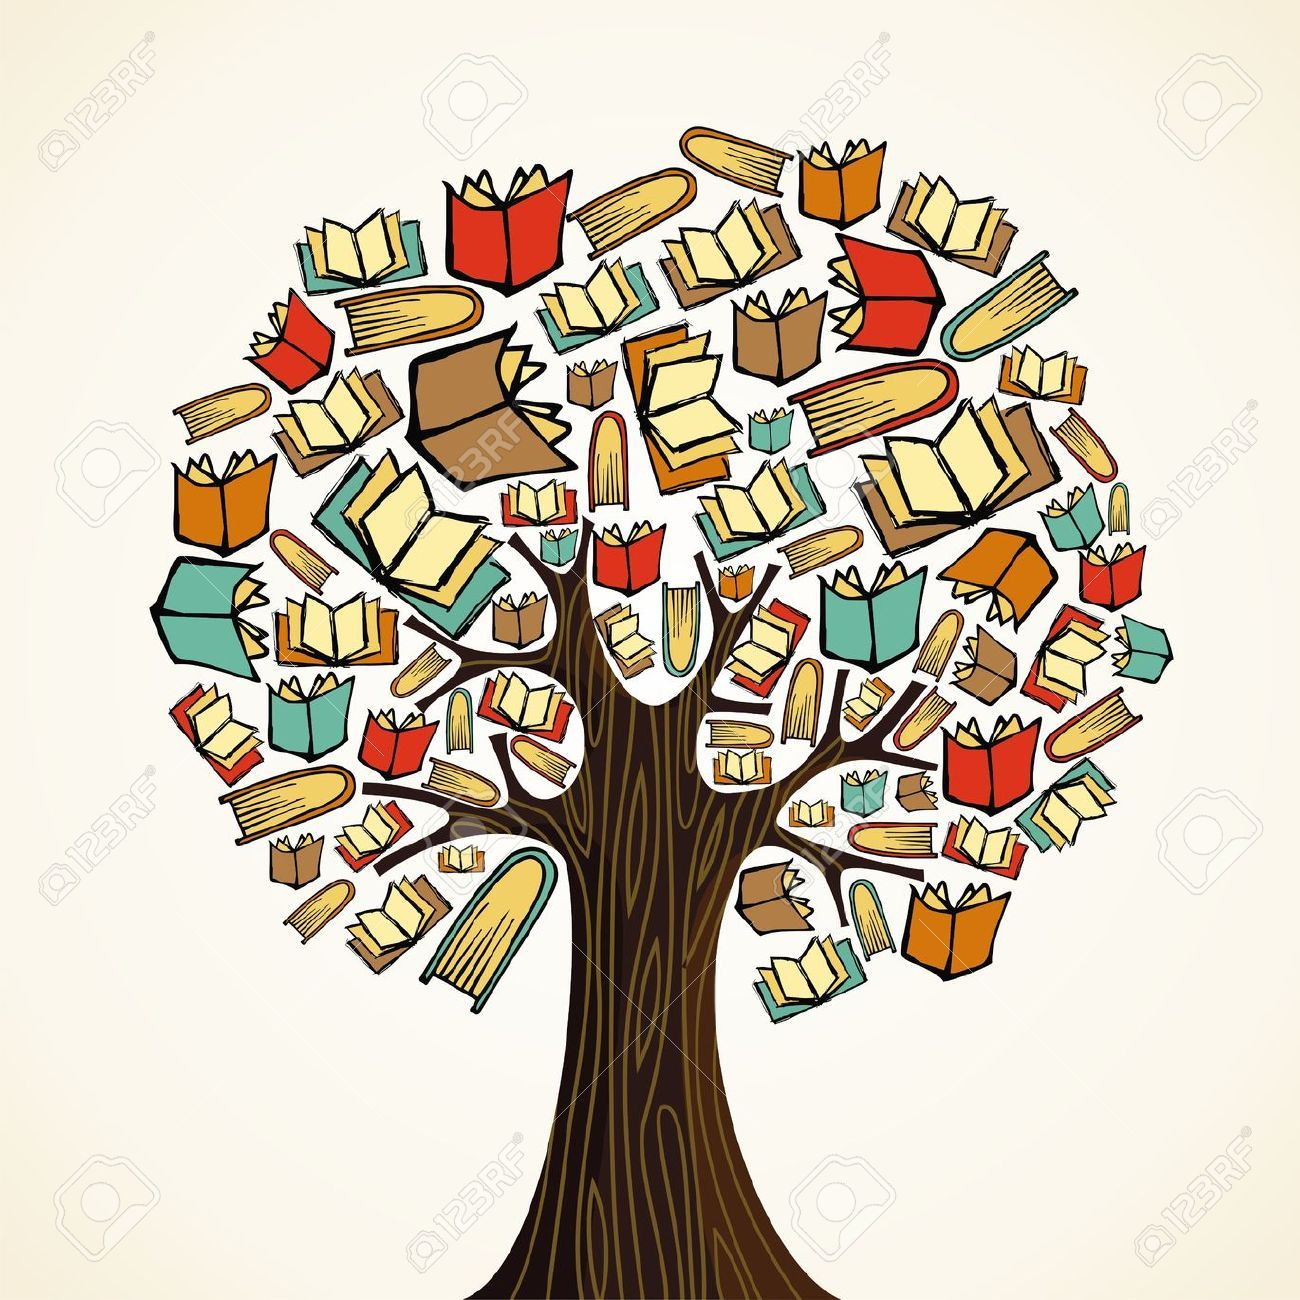 image transparent library Tree of knowledge clipart. Portal